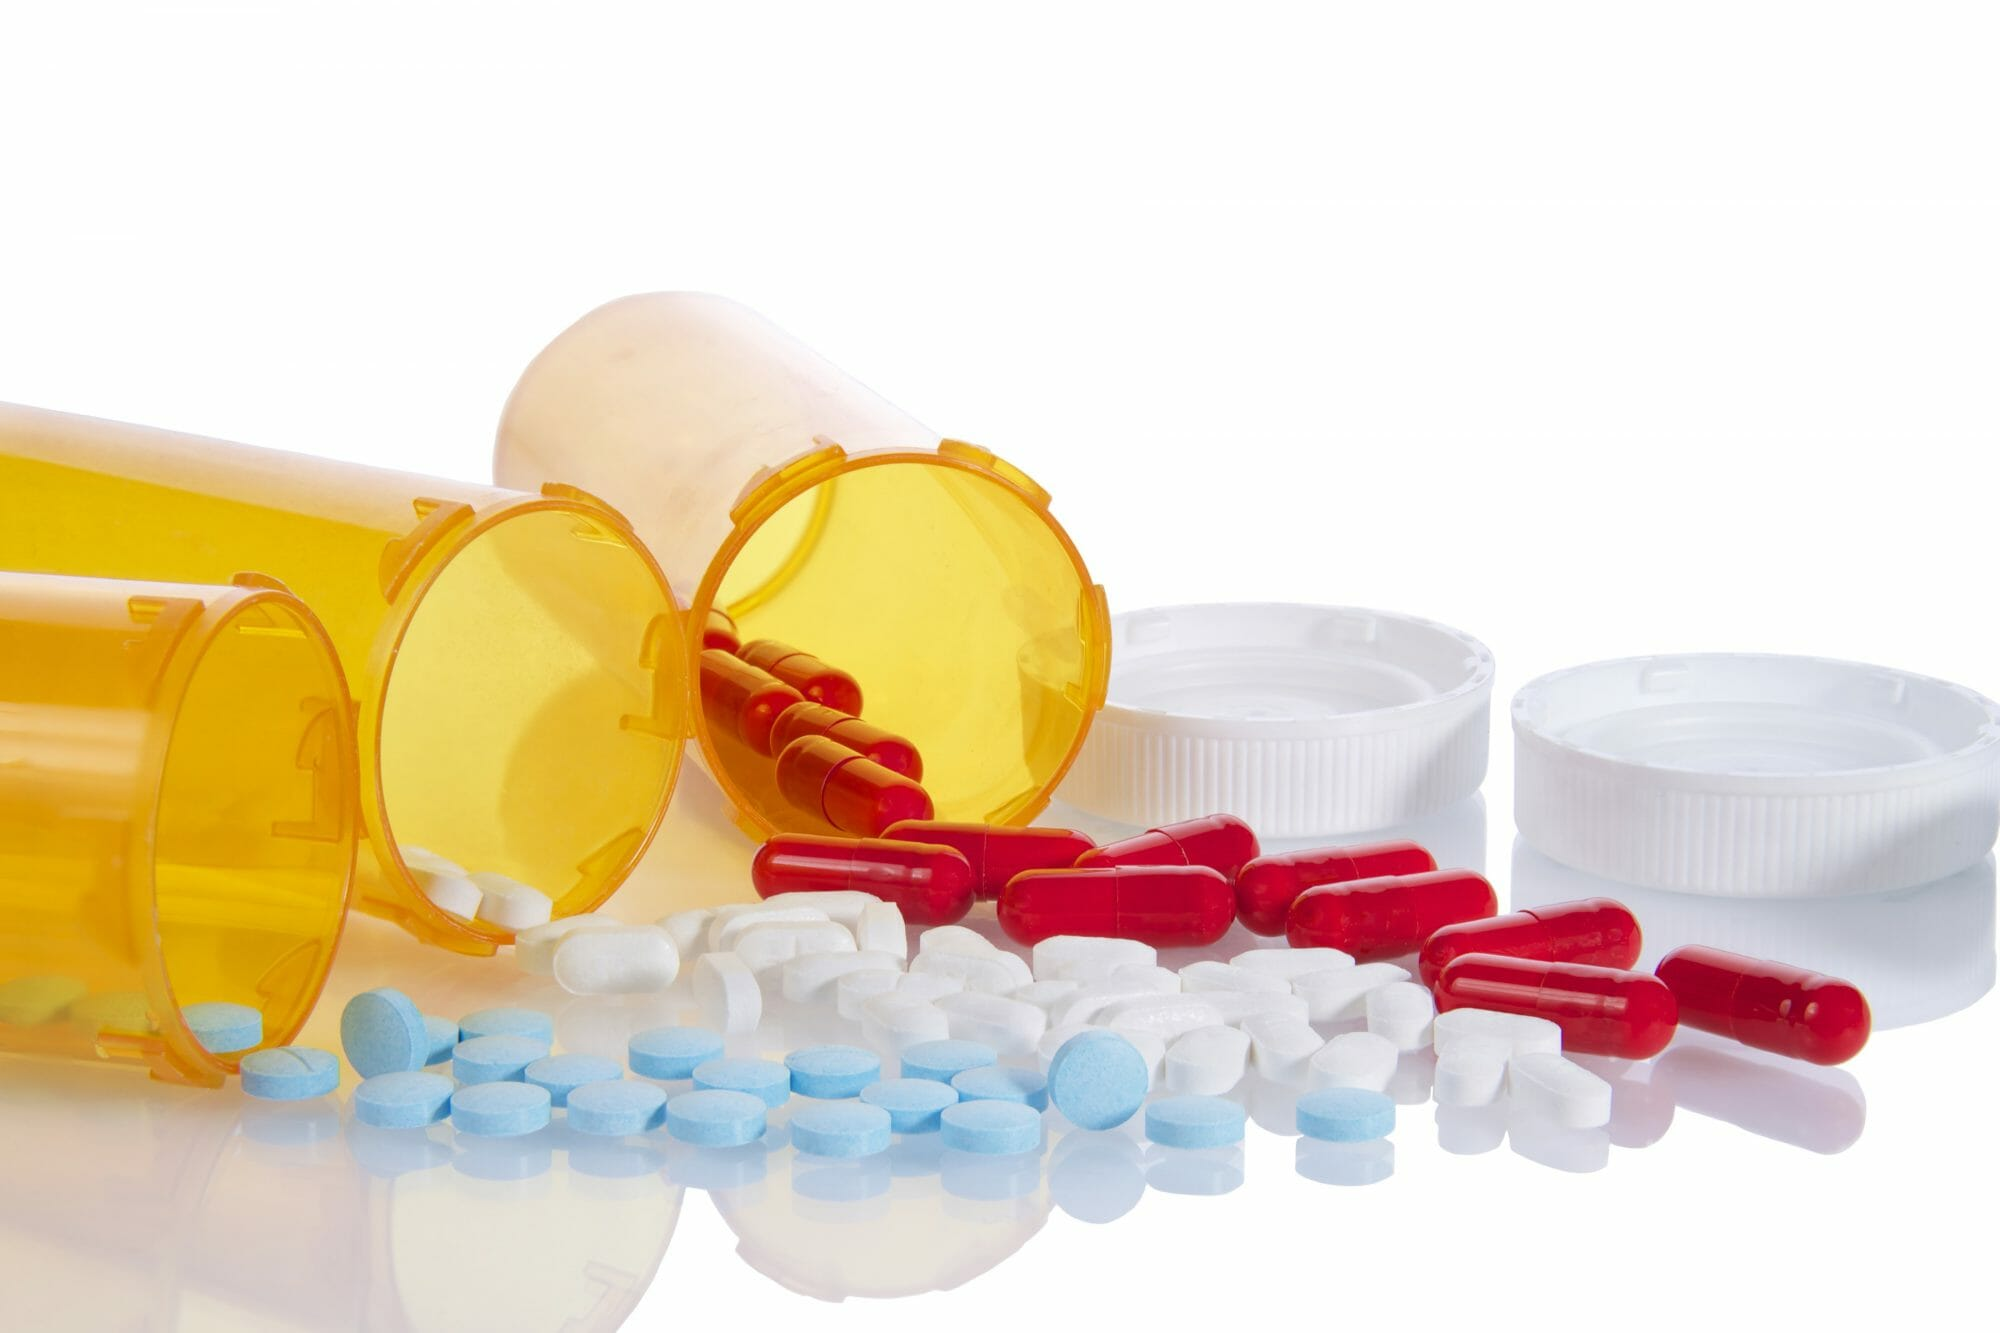 Three Prescription bottles lined up on their sides spilling medication pills out